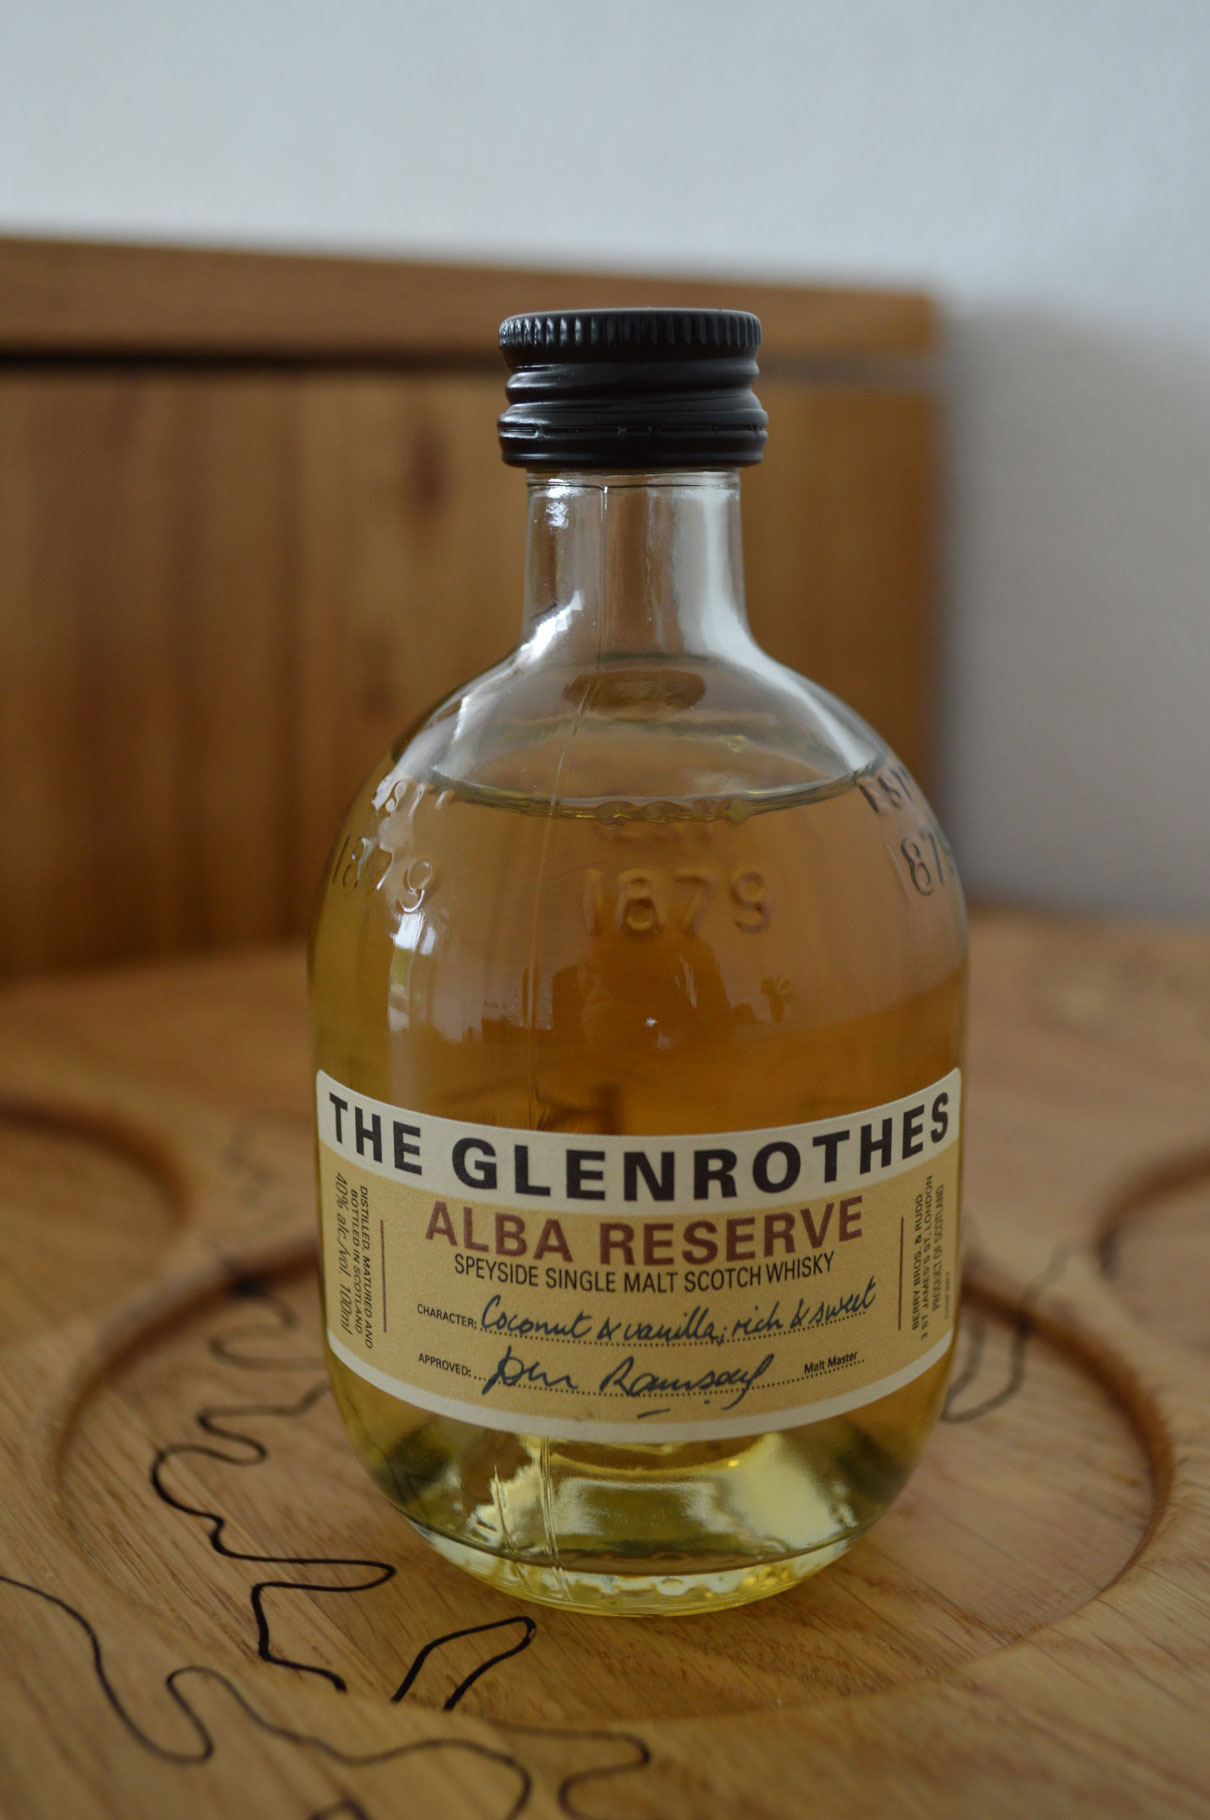 SPEYSIDE - The Glenrothes